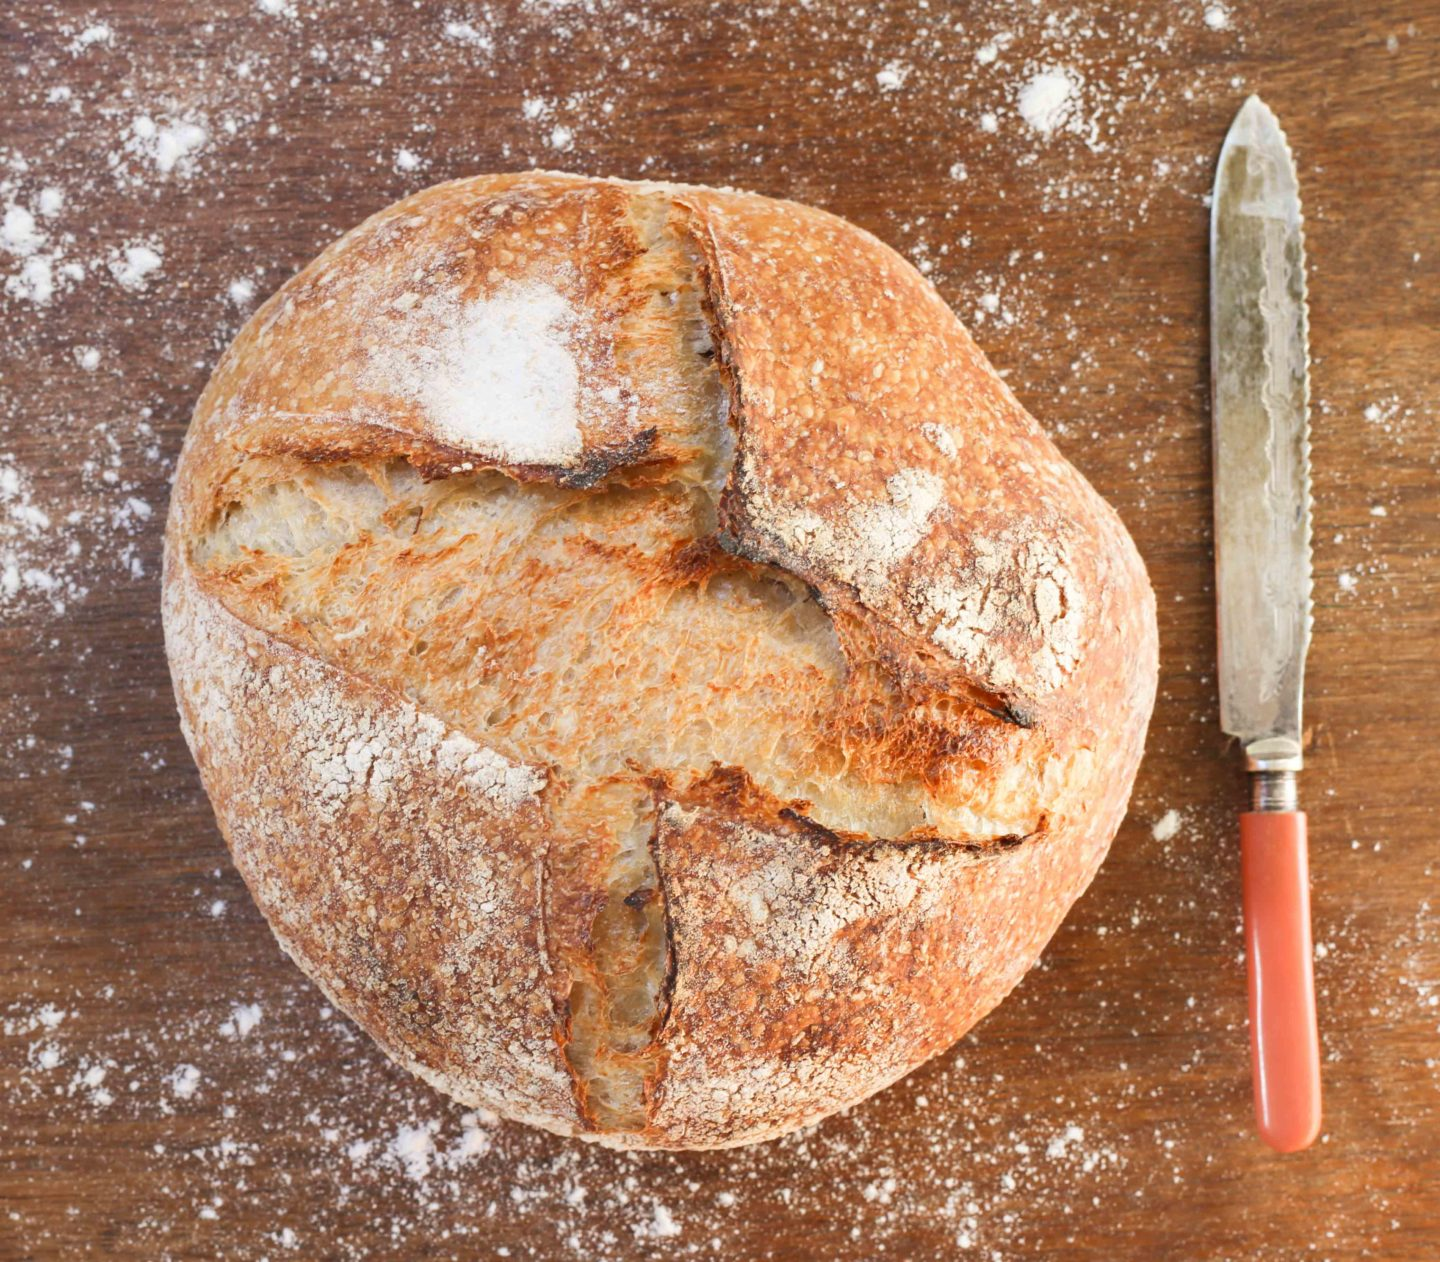 homemade sourdough bread by melbourne food blogger